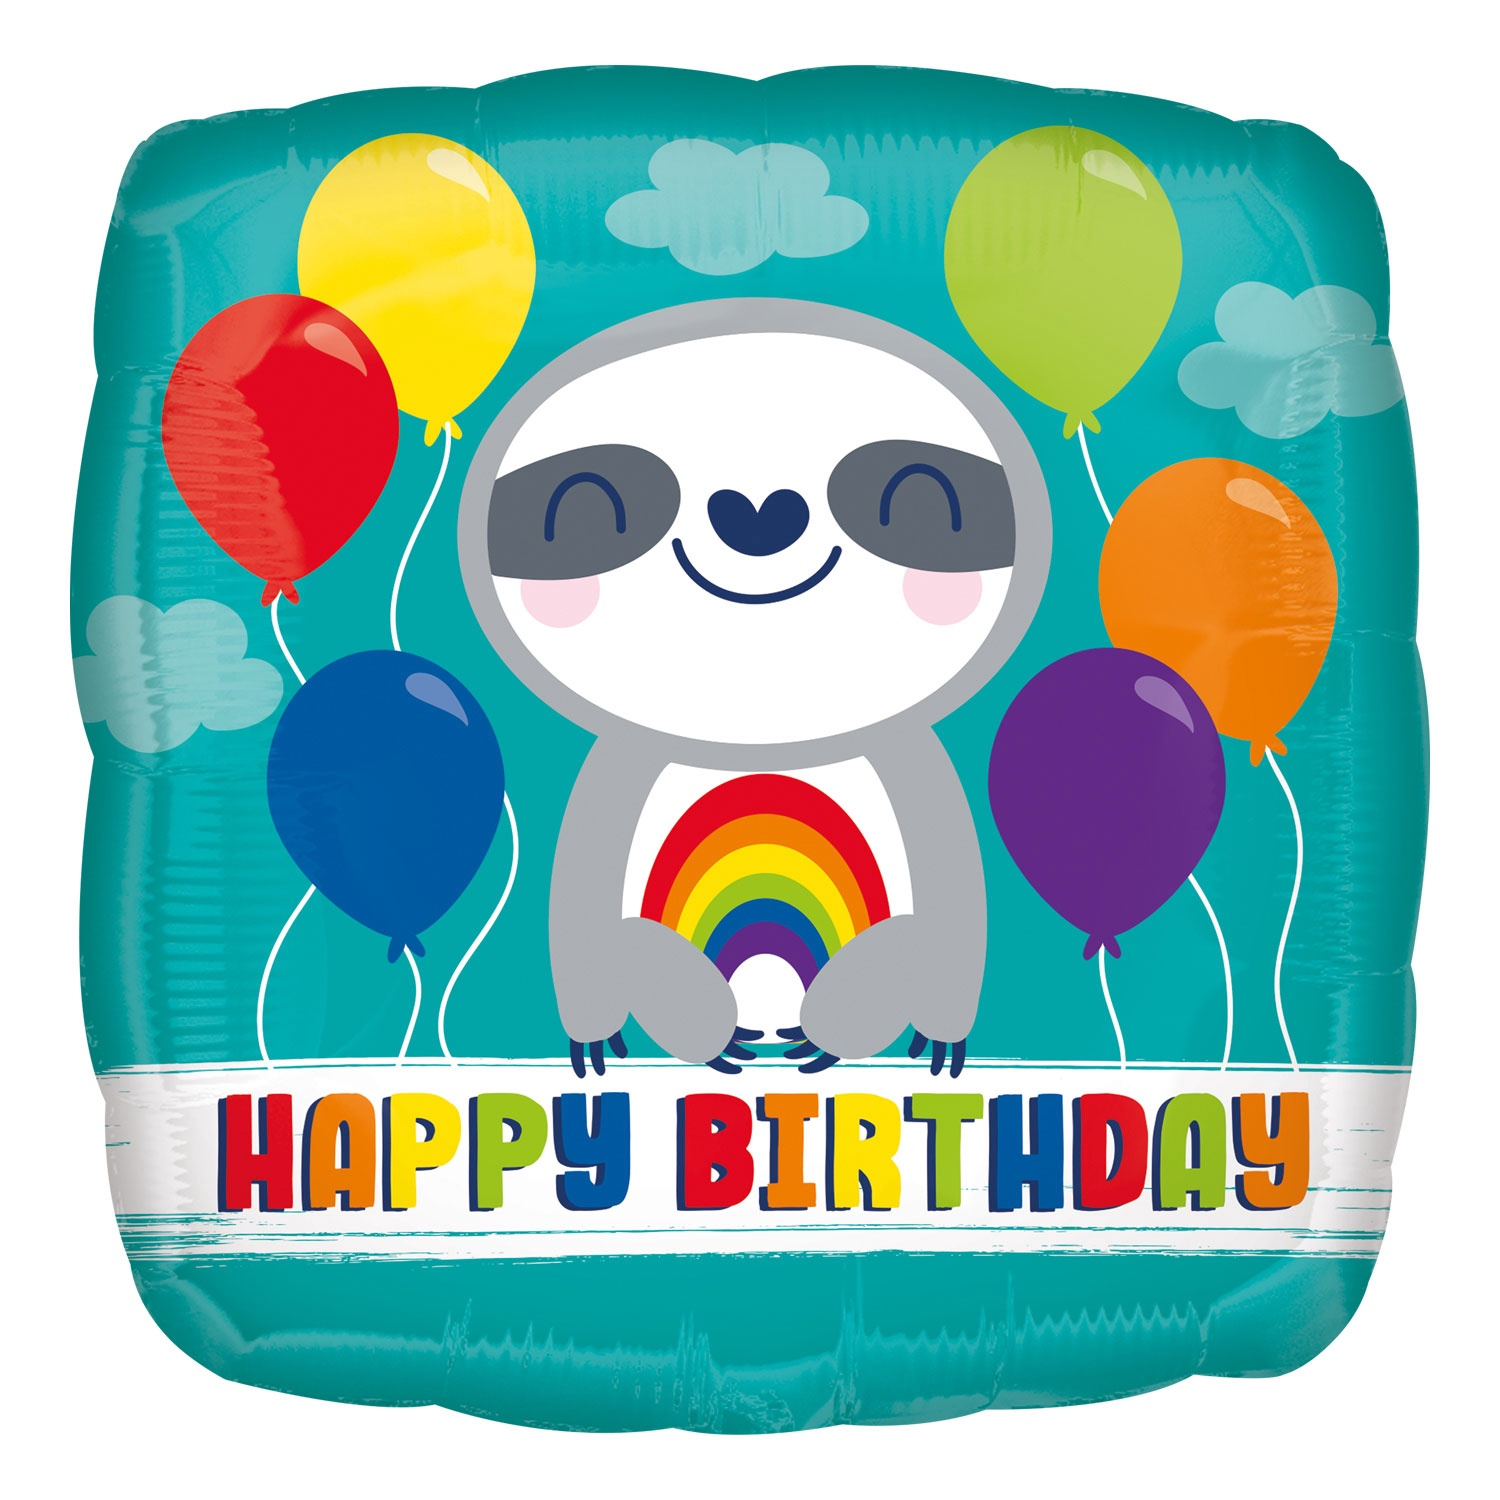 HAPPY BIRTHDAY SLOTH WITH RAINBOW FOIL BALLOON 17 INCHES